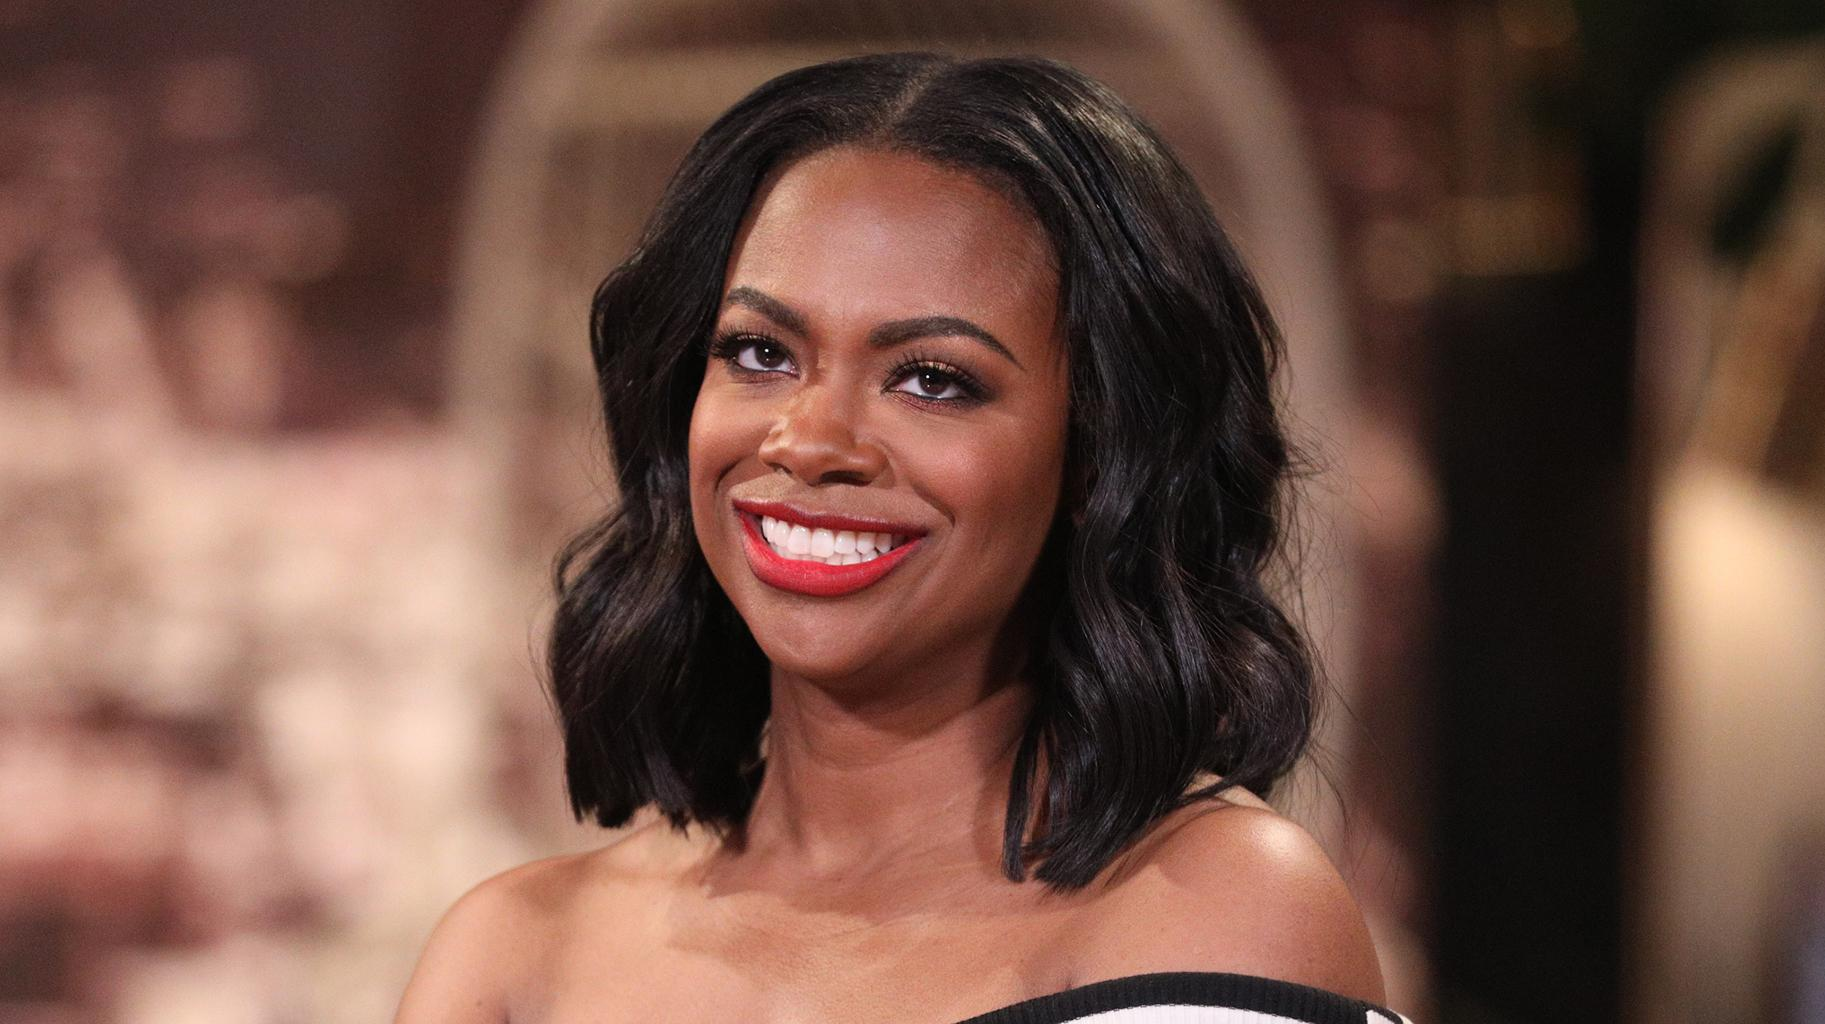 Kandi Burruss Shows Fans The 'Threesome' They Were All Waiting For